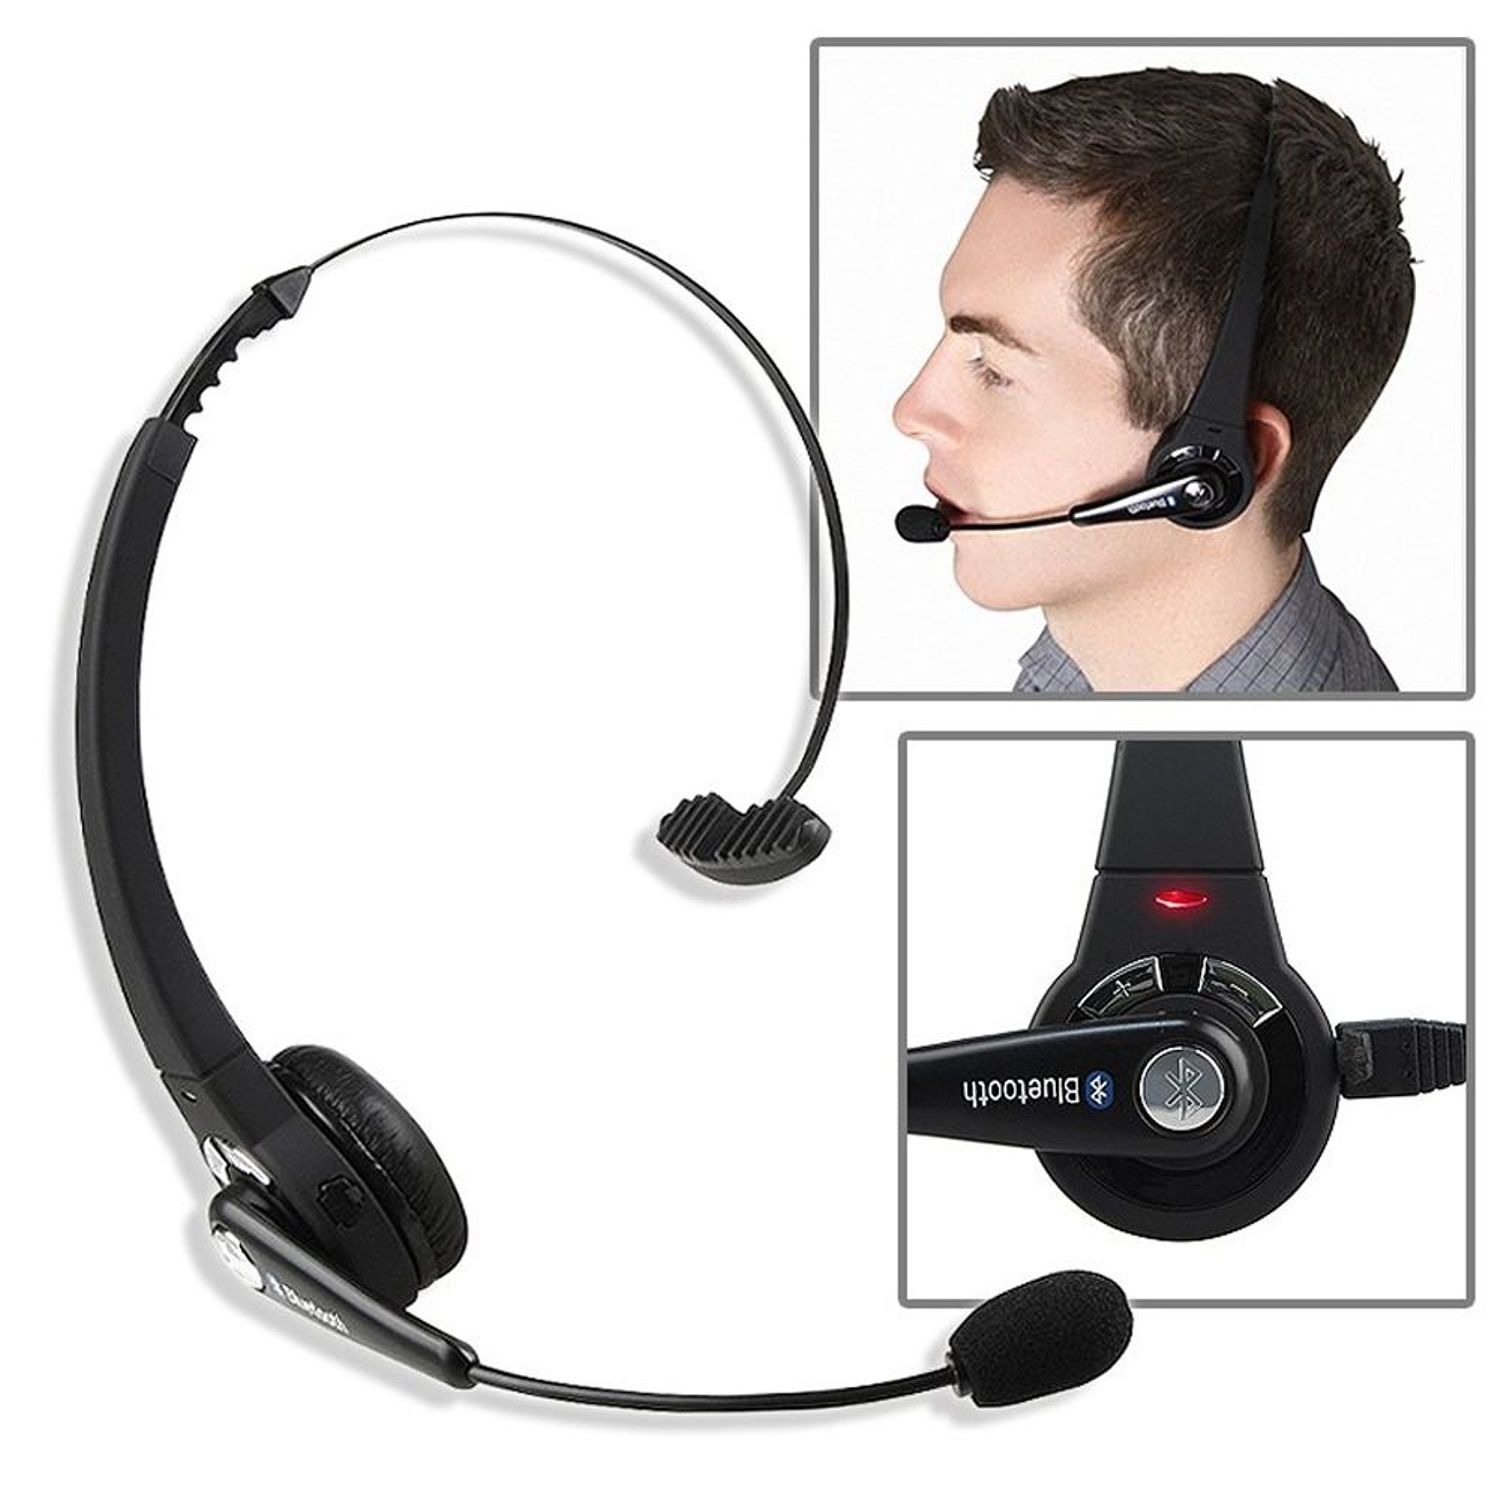 Insten Wireless bluet ooth Gaming Headset for PS3 SONY PLAYSTATION 3